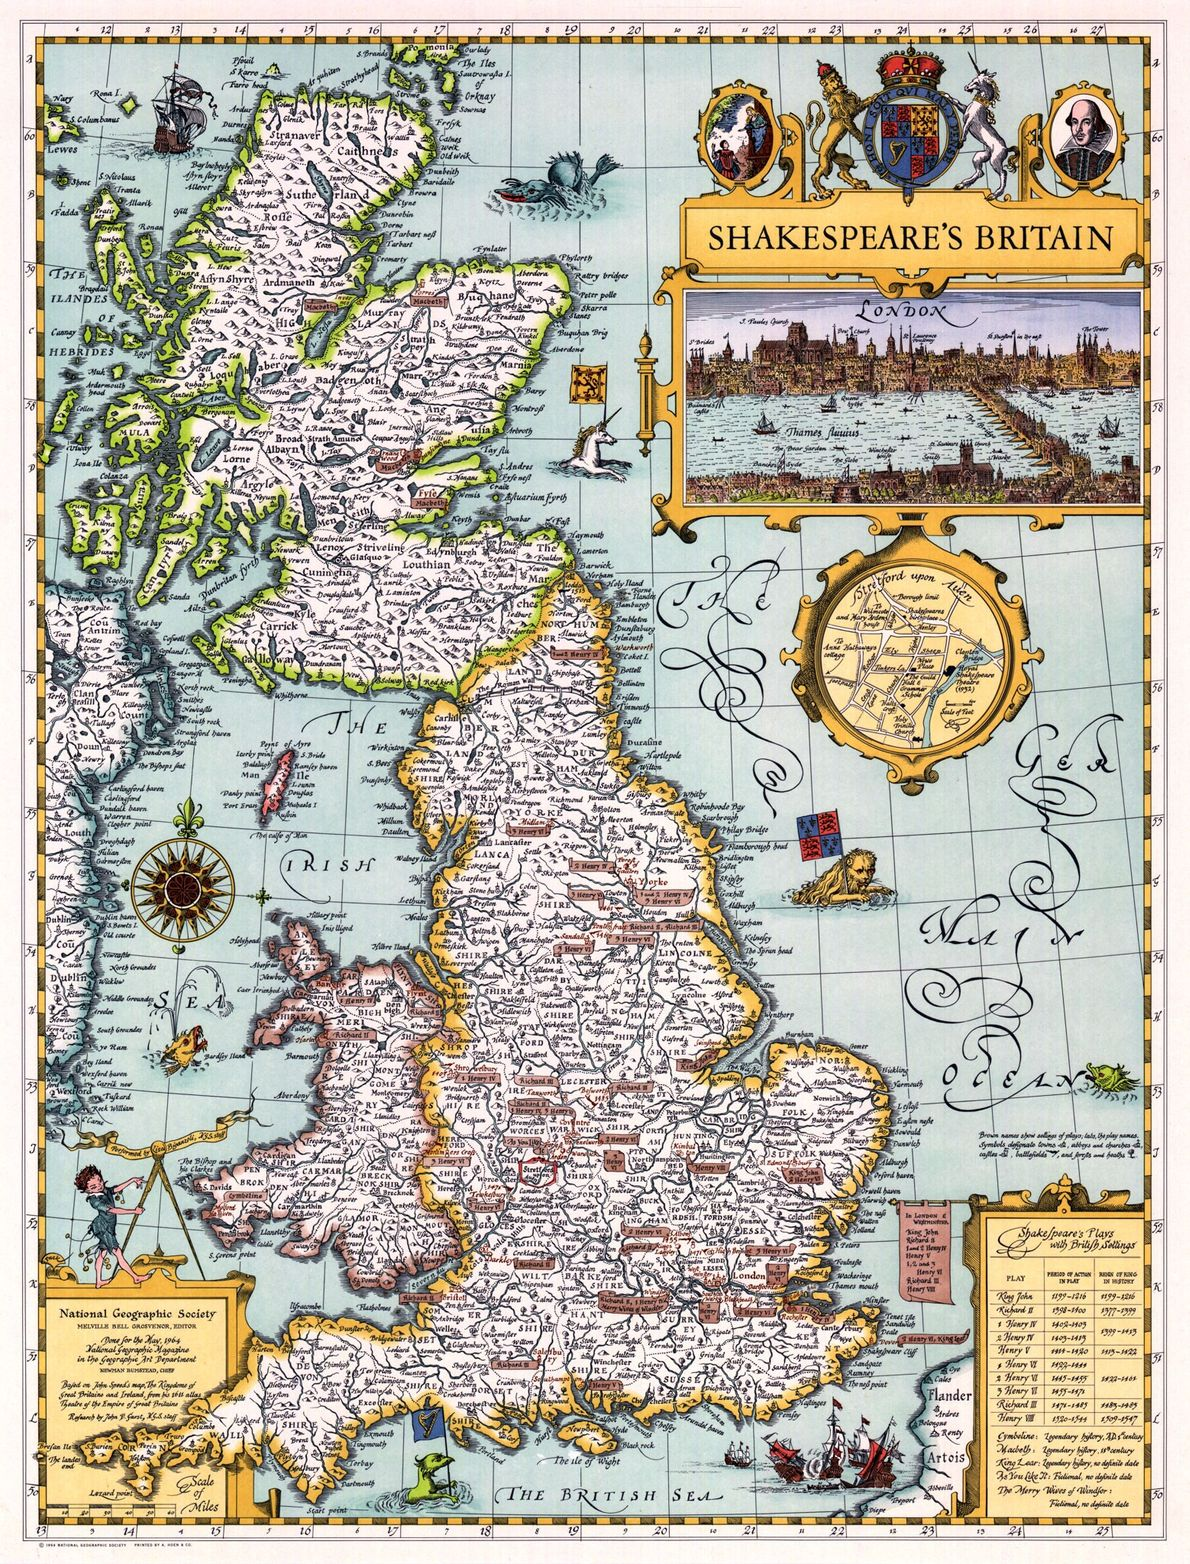 1964 Shakespeare's Britain